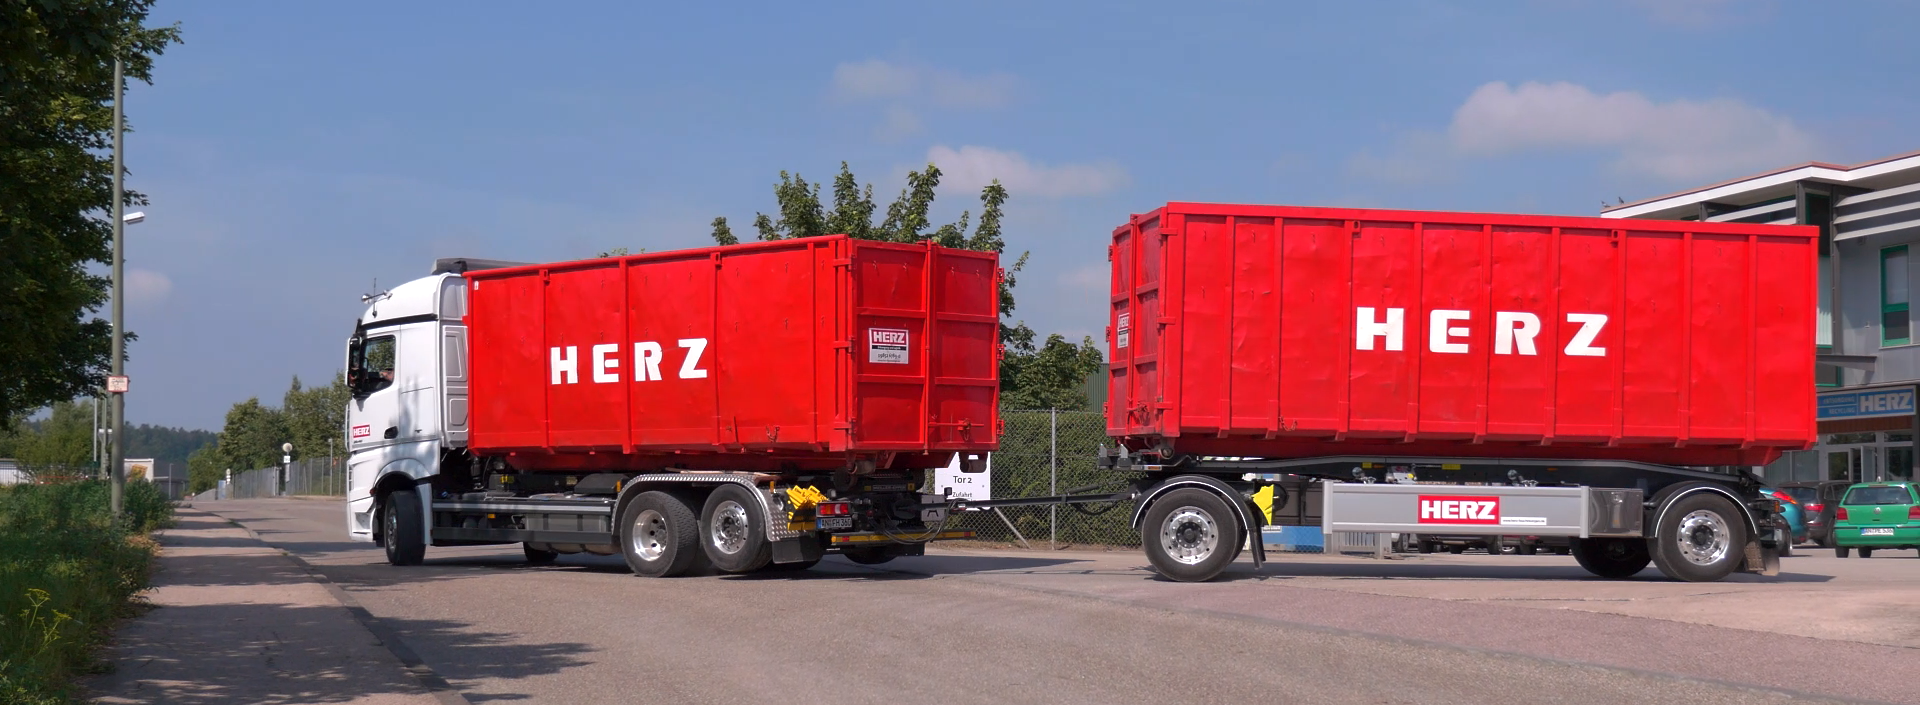 Containerfahrzeug Abrollcontainer Container Abroller Absetzcontainer Mulde Abroller Transport